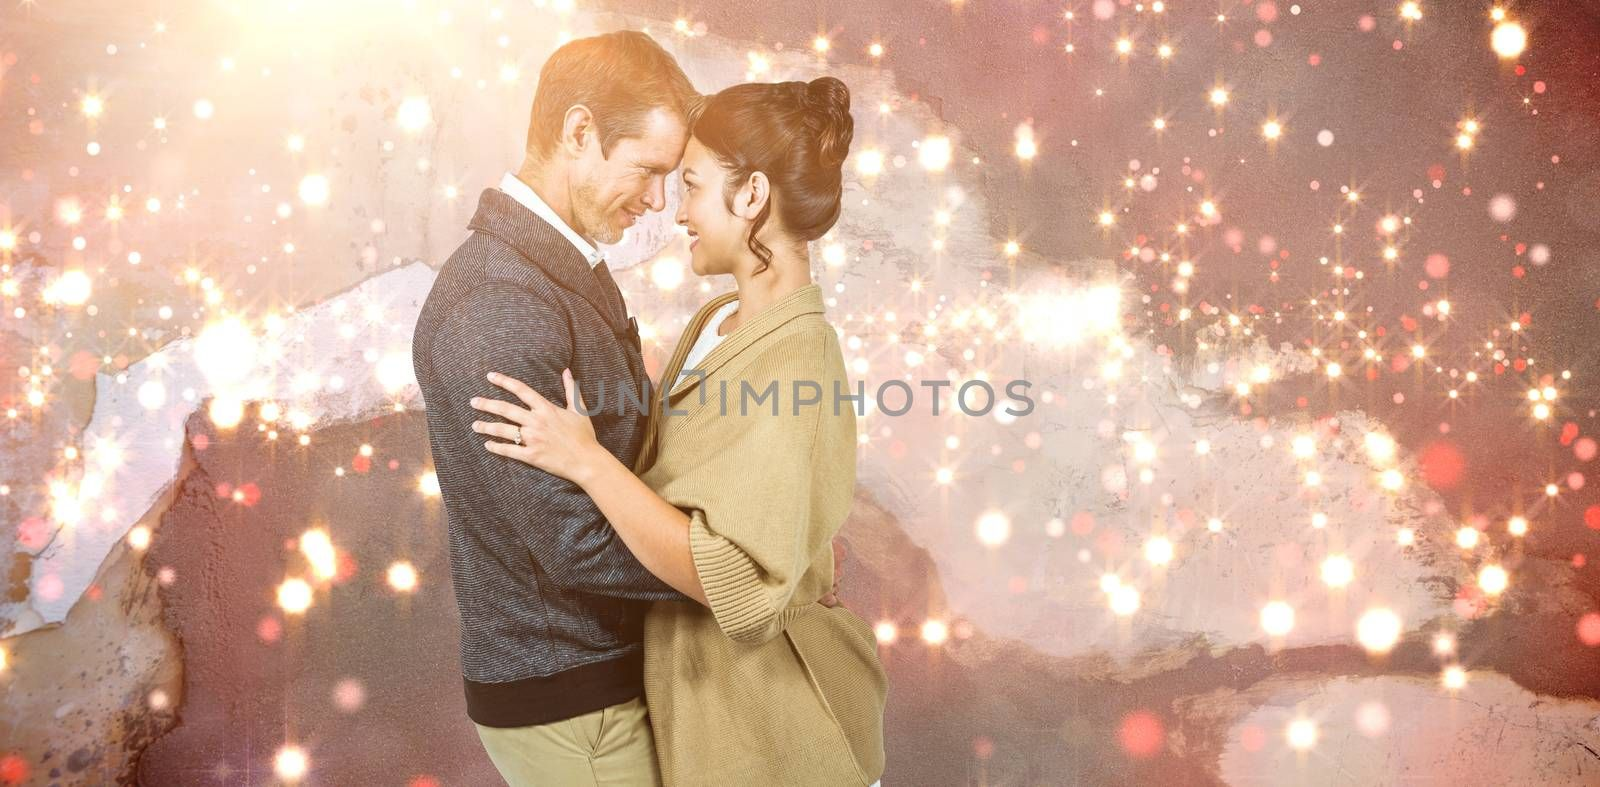 Side view of romantic couple hugging against blurred red light